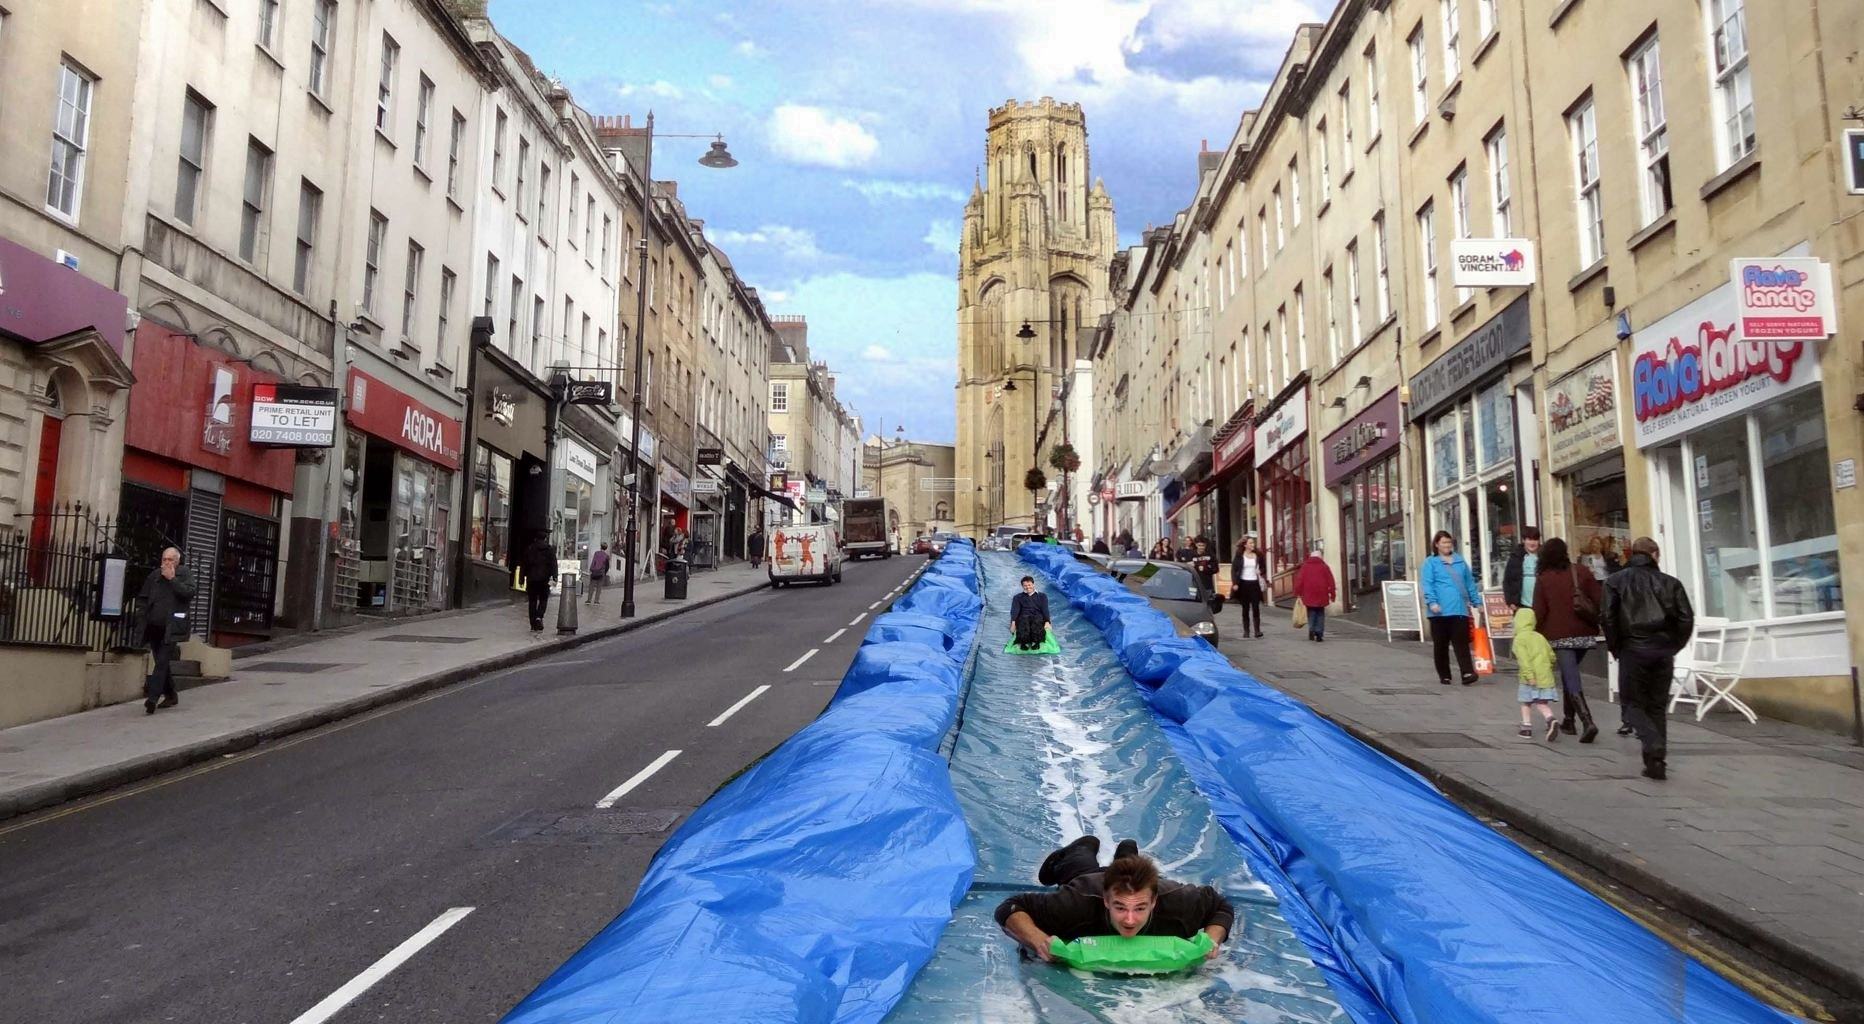 Park and Slide in Bristol. Image © Flickr CC User Paul Townsend